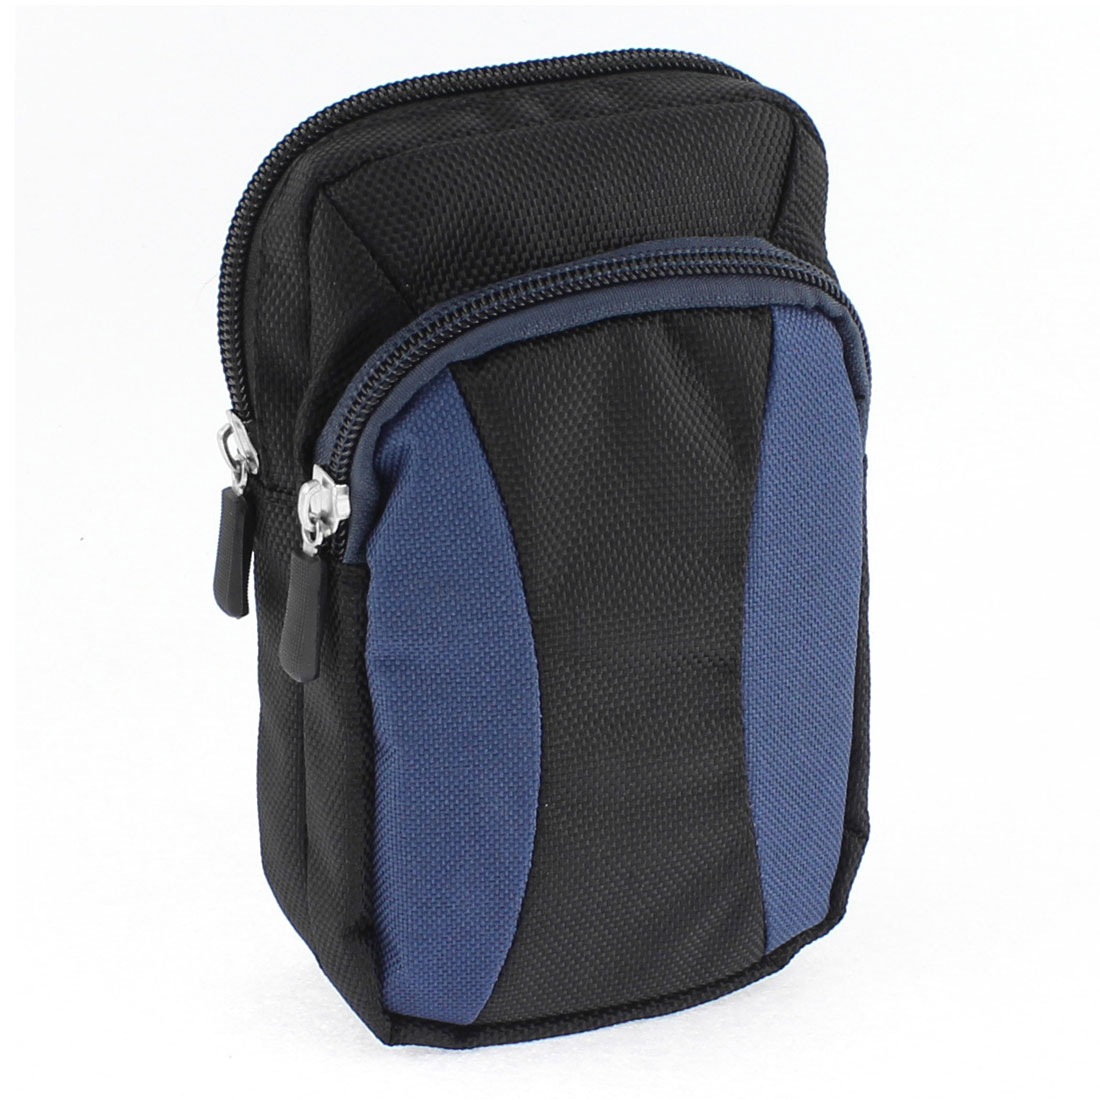 Outdoor Travel Zipper Closure Coin Phone Holder Waist Belt Pack Bag Wallet Blue Black